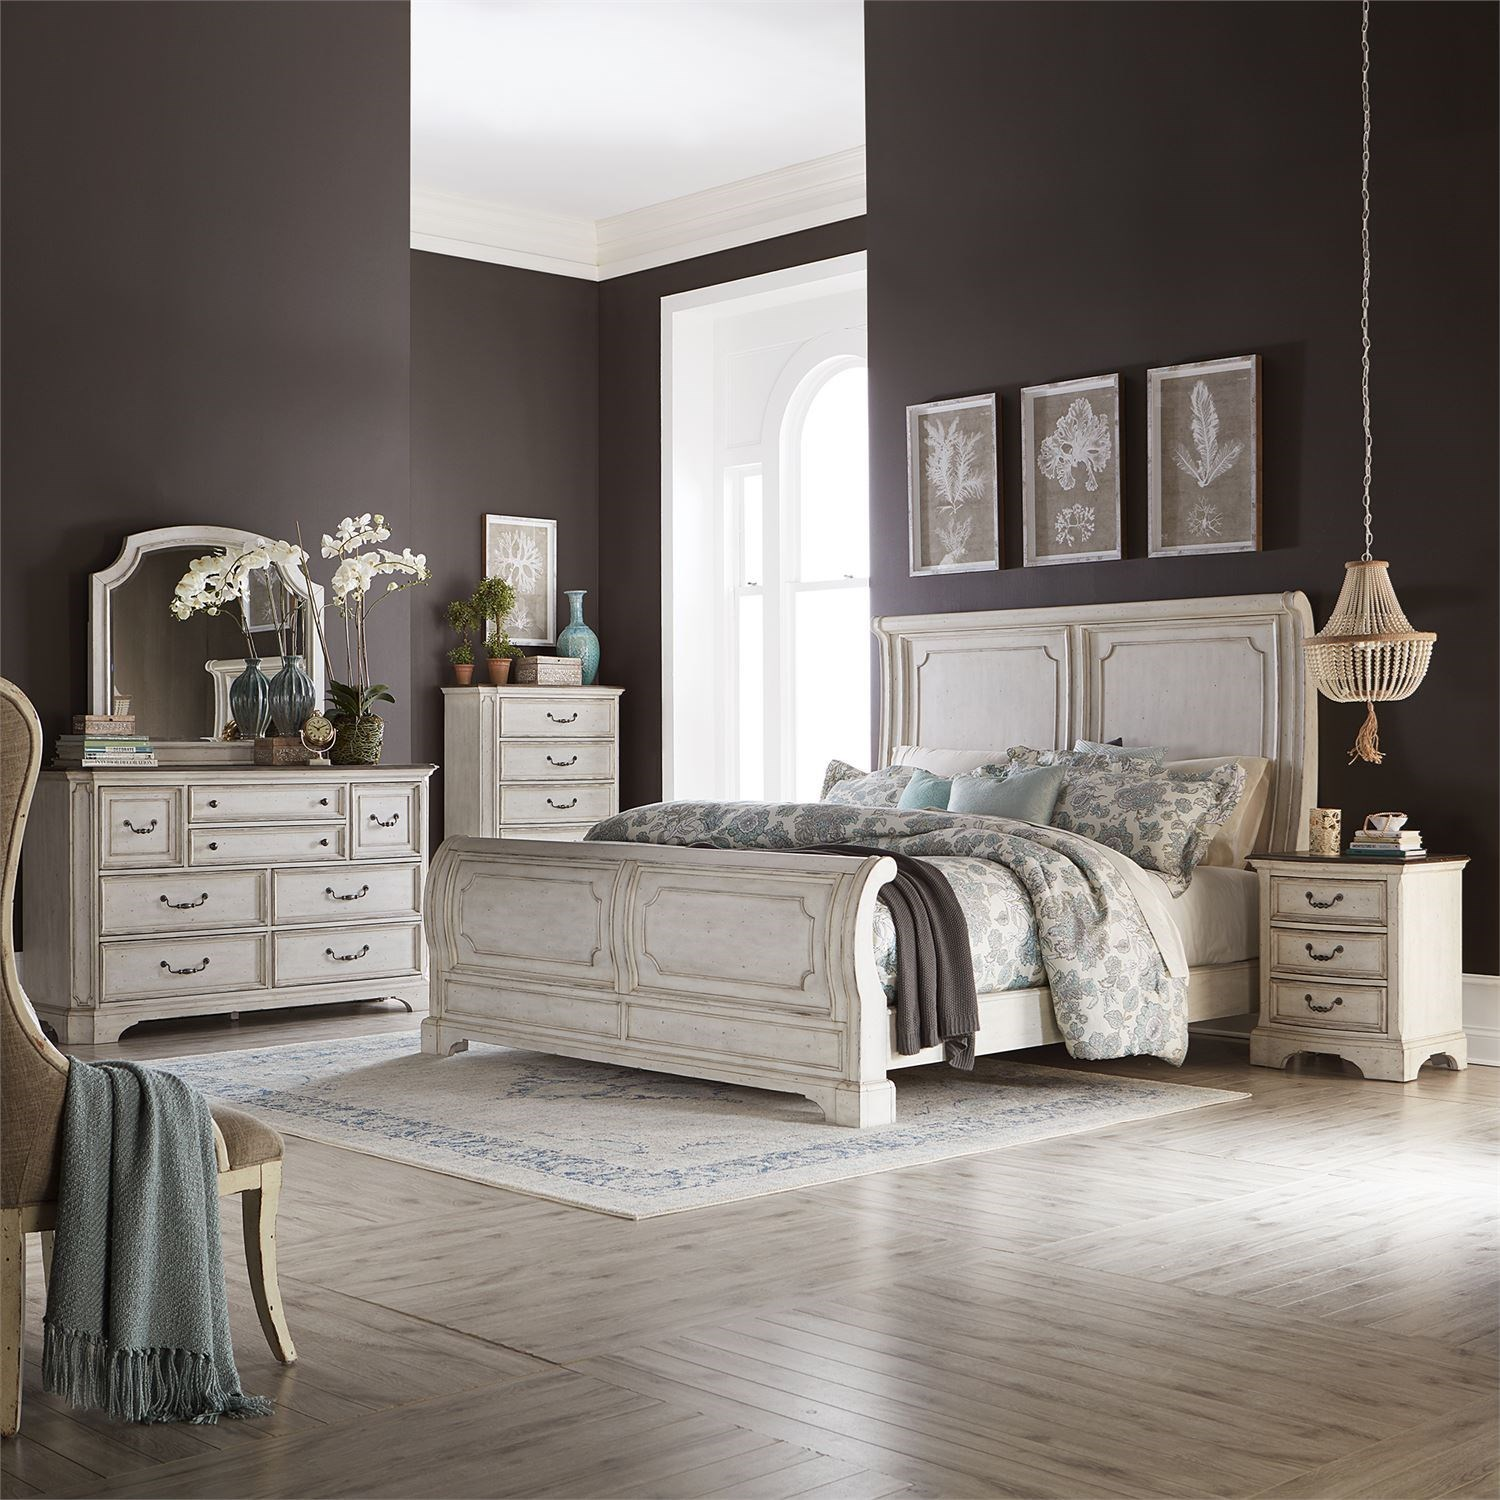 Abbey Road King Bedroom Group by Liberty Furniture at Goffena Furniture & Mattress Center